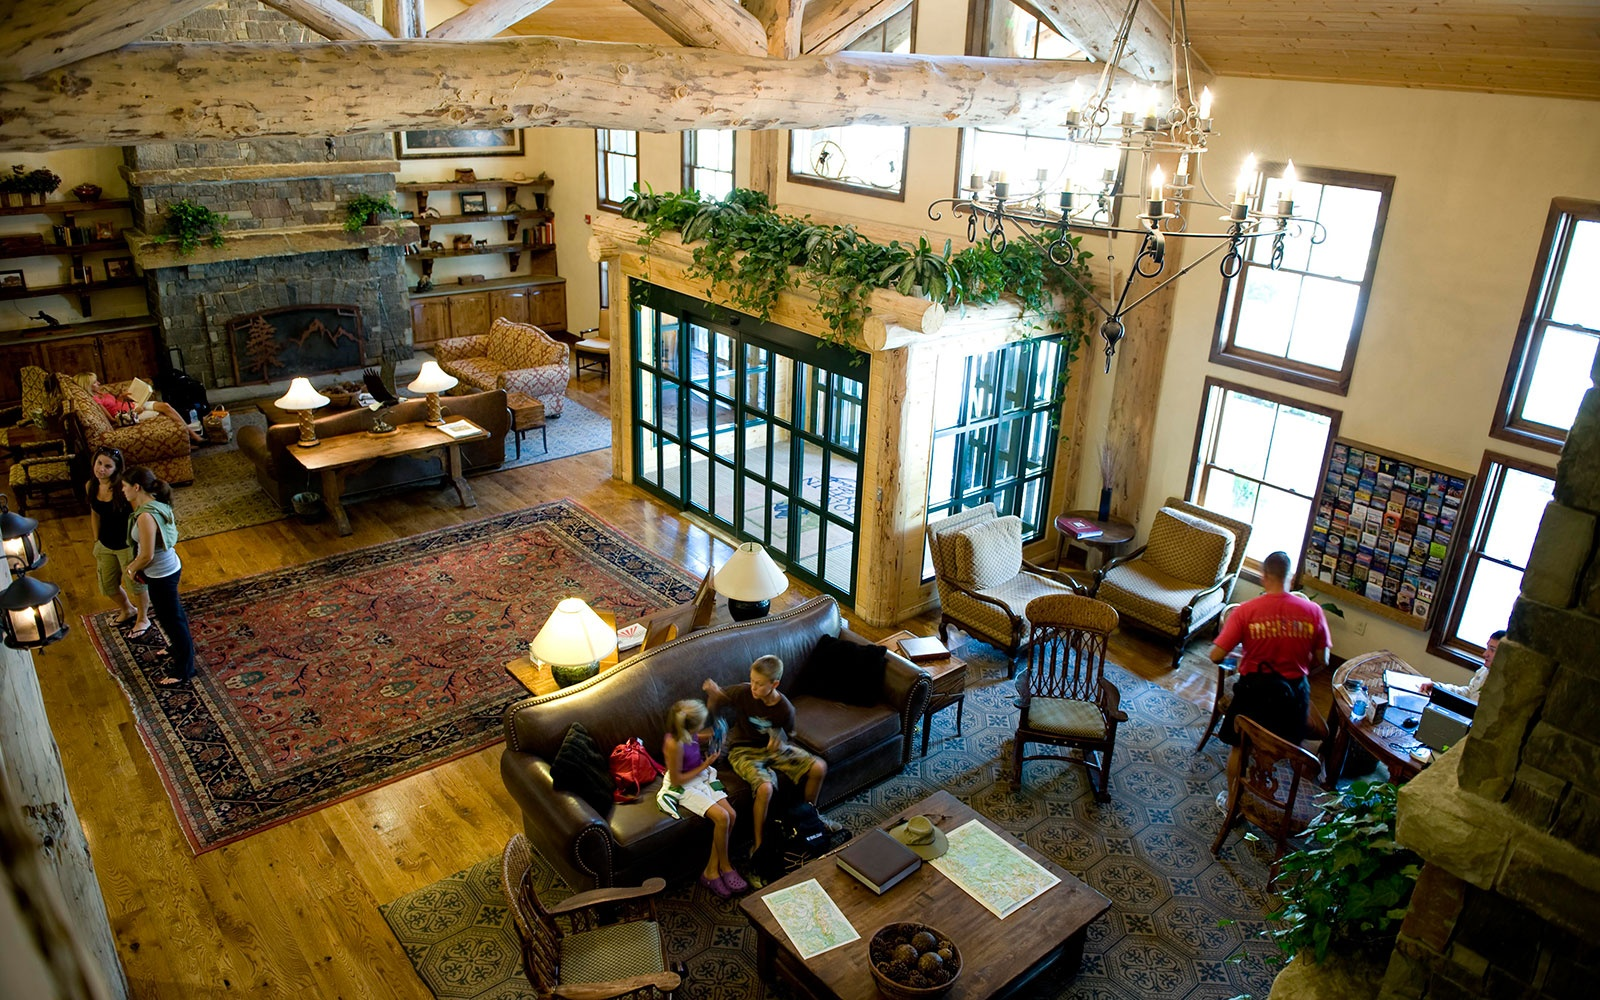 No. 17 Teton Mountain Lodge & Spa, Teton Village, Wyoming